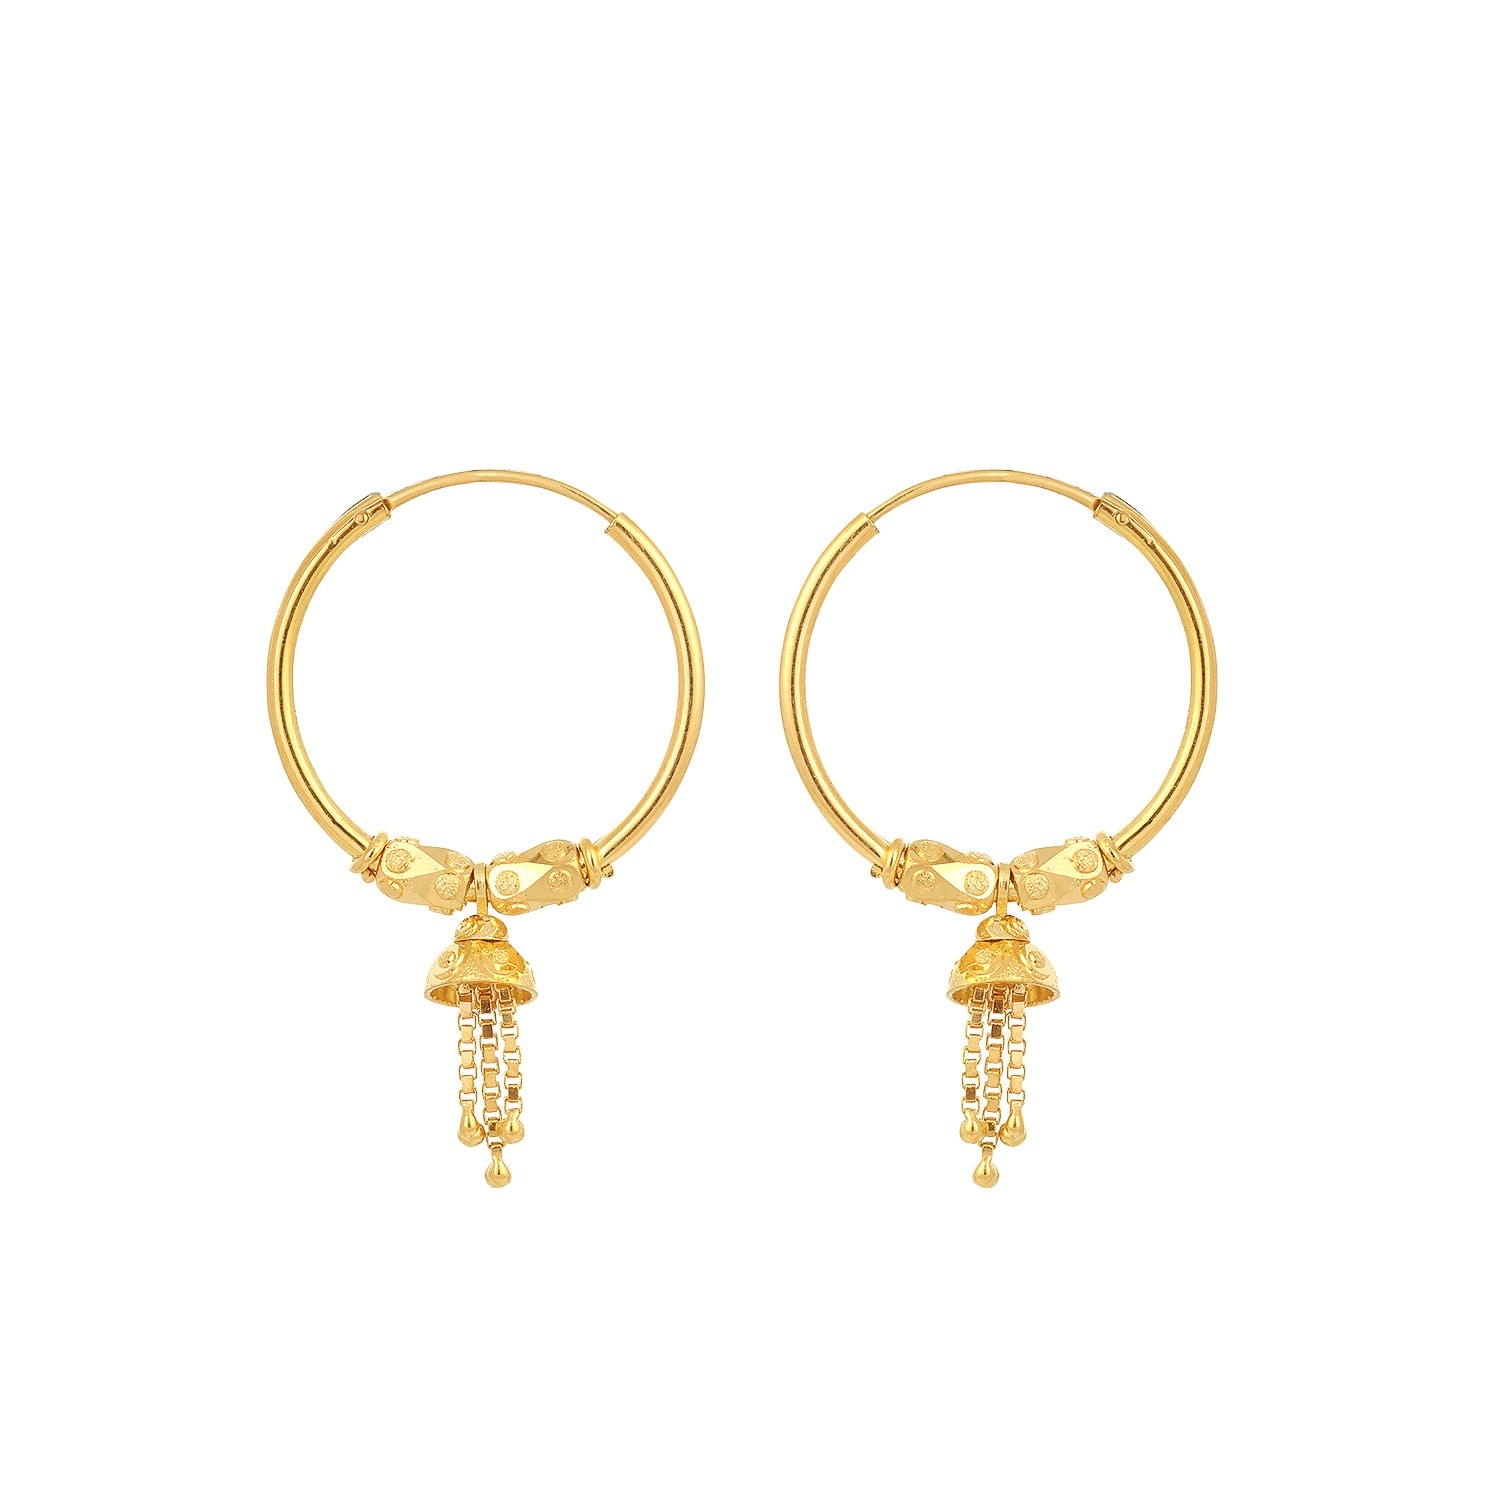 Gold Earrings Models Tanishq - Best Earring 2017